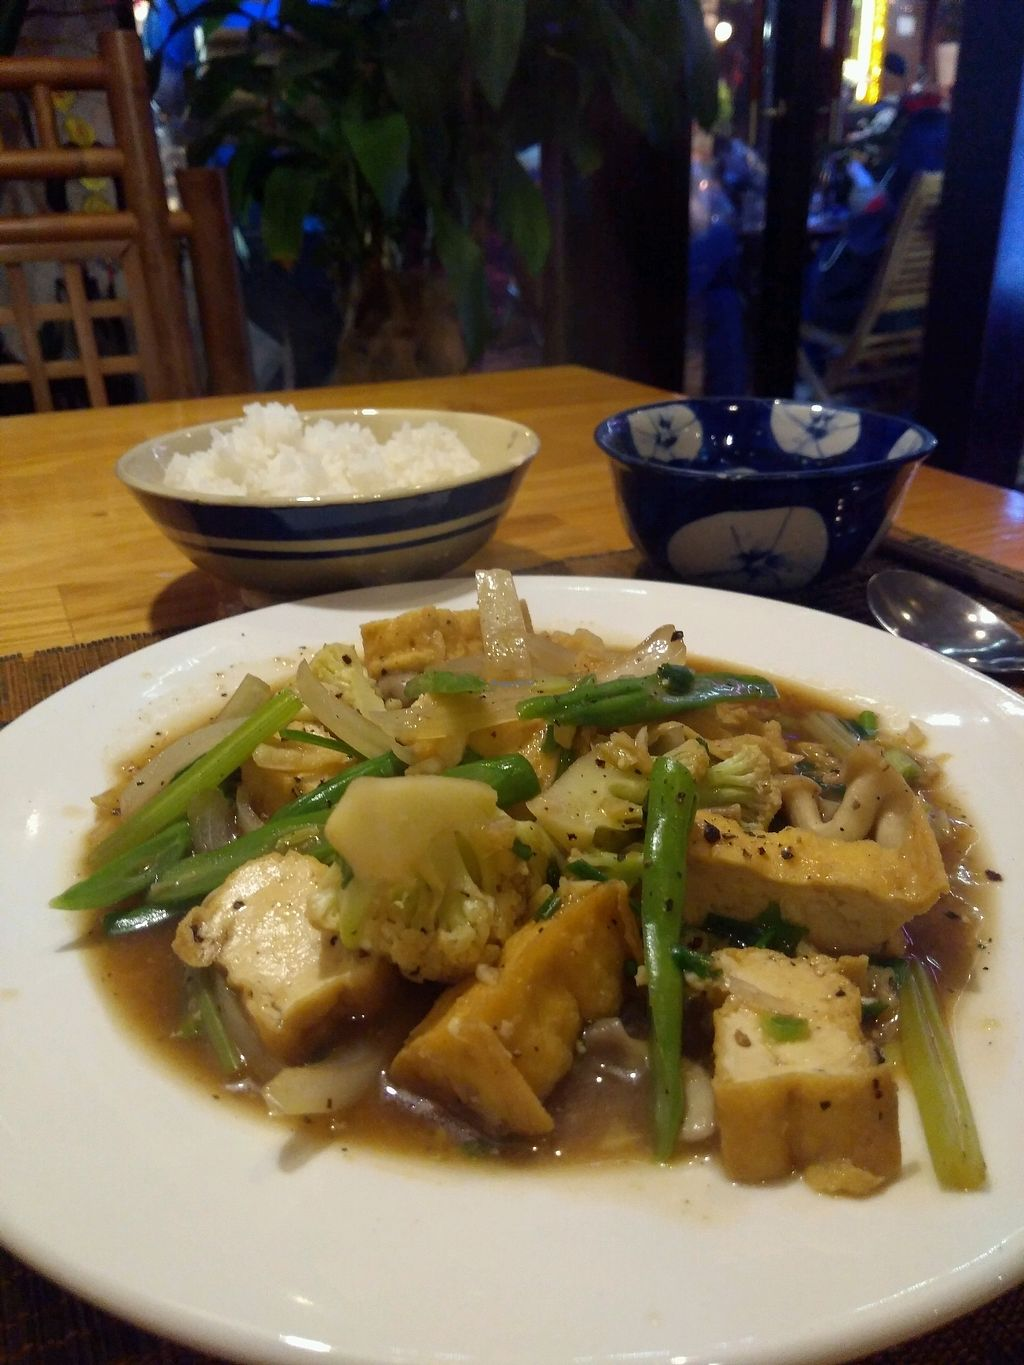 """Photo of Goc Ha Thanh  by <a href=""""/members/profile/world987"""">world987</a> <br/>Stir Fry Tofu with Garlic and Pepper <br/> January 7, 2018  - <a href='/contact/abuse/image/61523/343940'>Report</a>"""